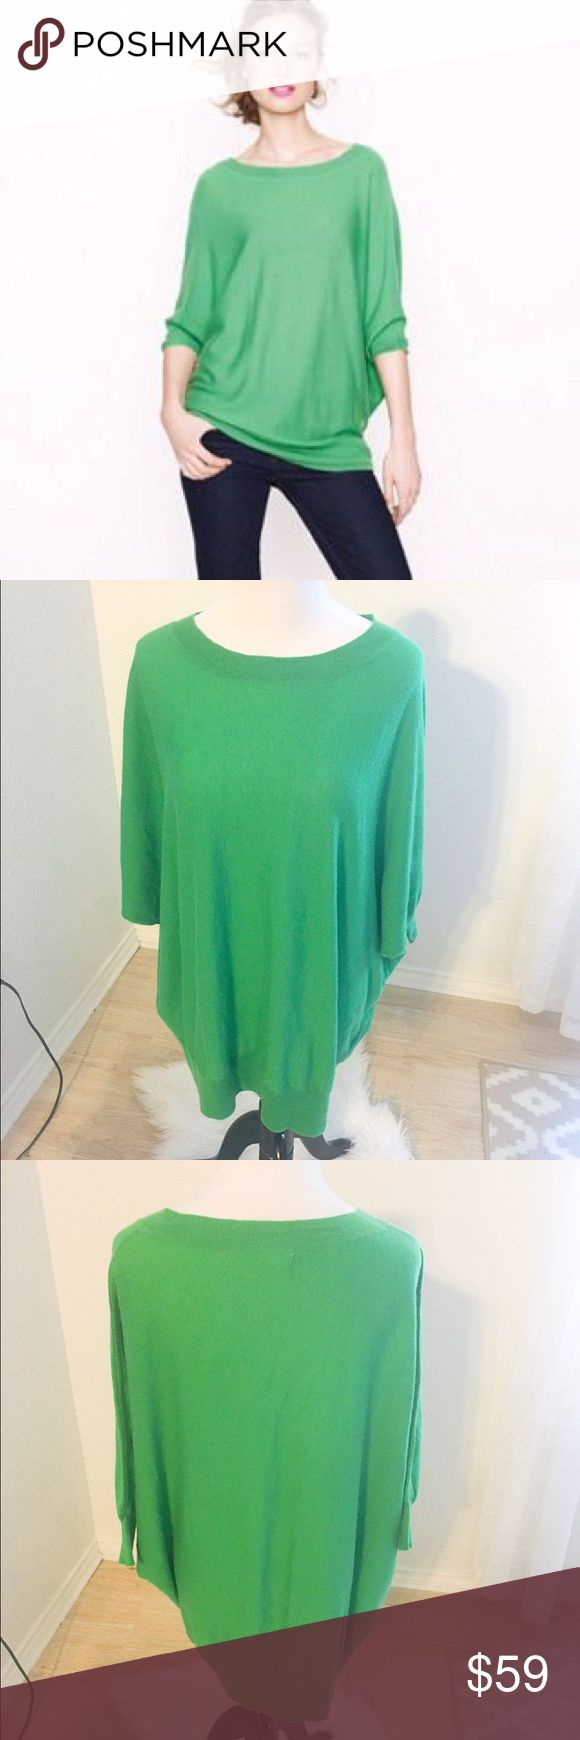 J crew 100% cashmere tunic Beautiful cashmere J. Crew sweater. Unbelievably soft and warm. Beautiful with jeans or leggings. Excellent condition. J. Crew Sweaters Crew & Scoop Necks